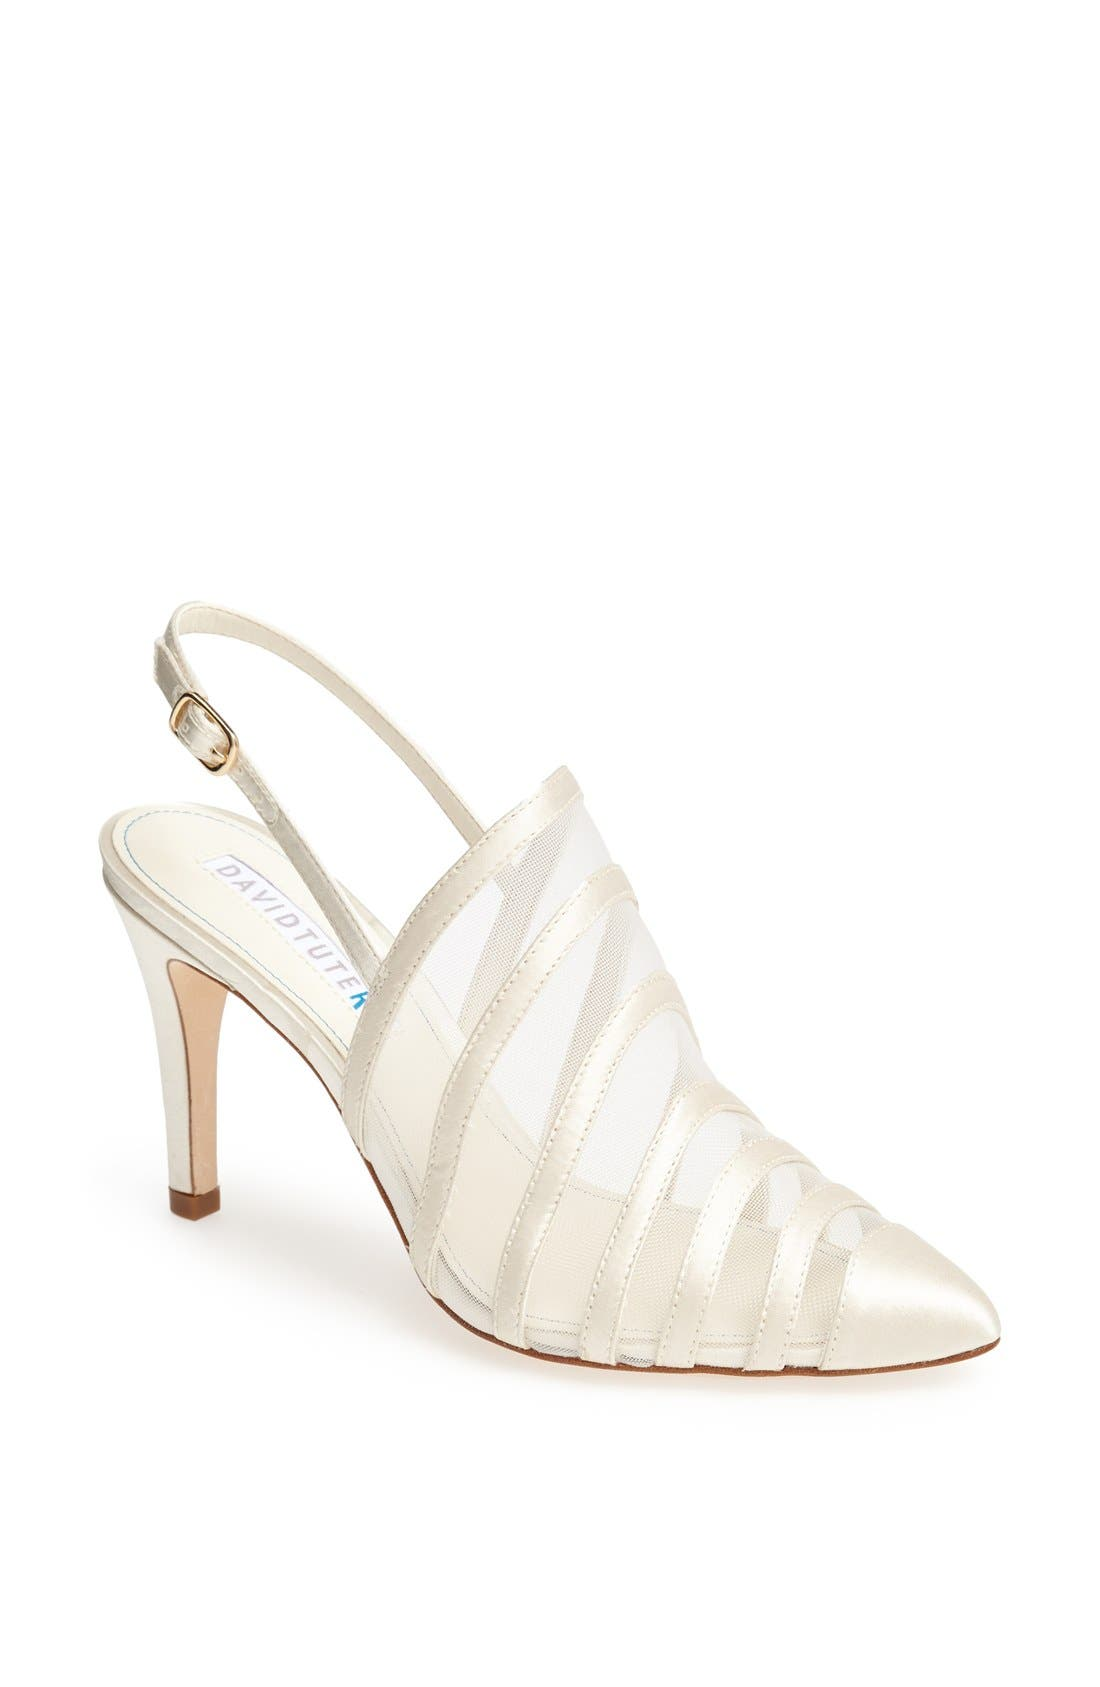 Alternate Image 1 Selected - David Tutera 'Hazy' Pump